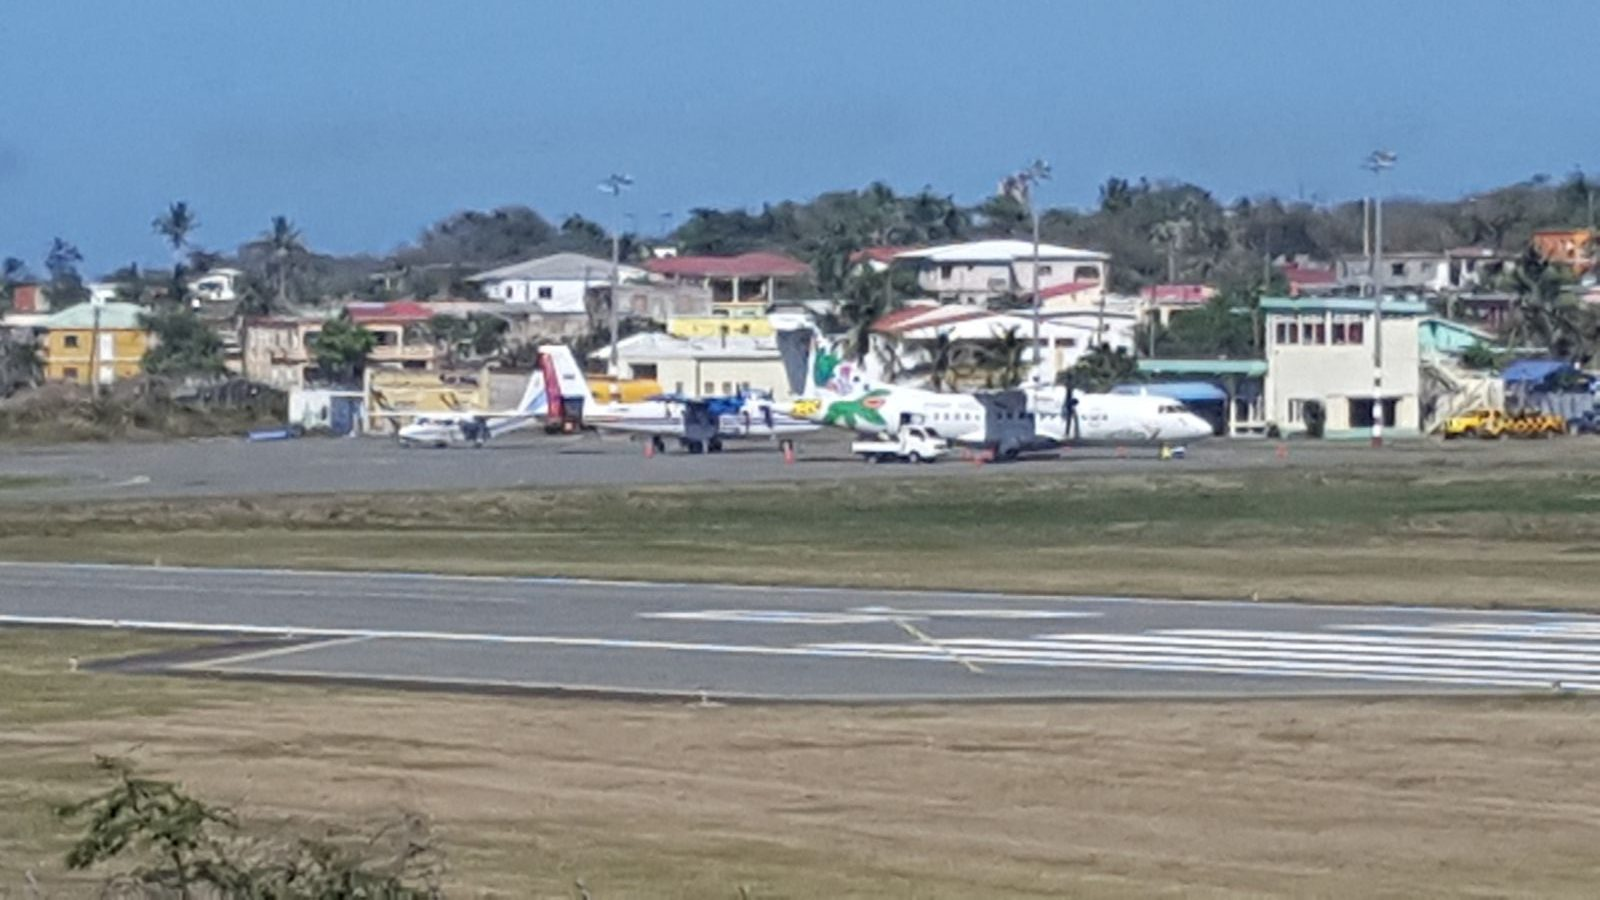 Statia Airport April 27th 2018